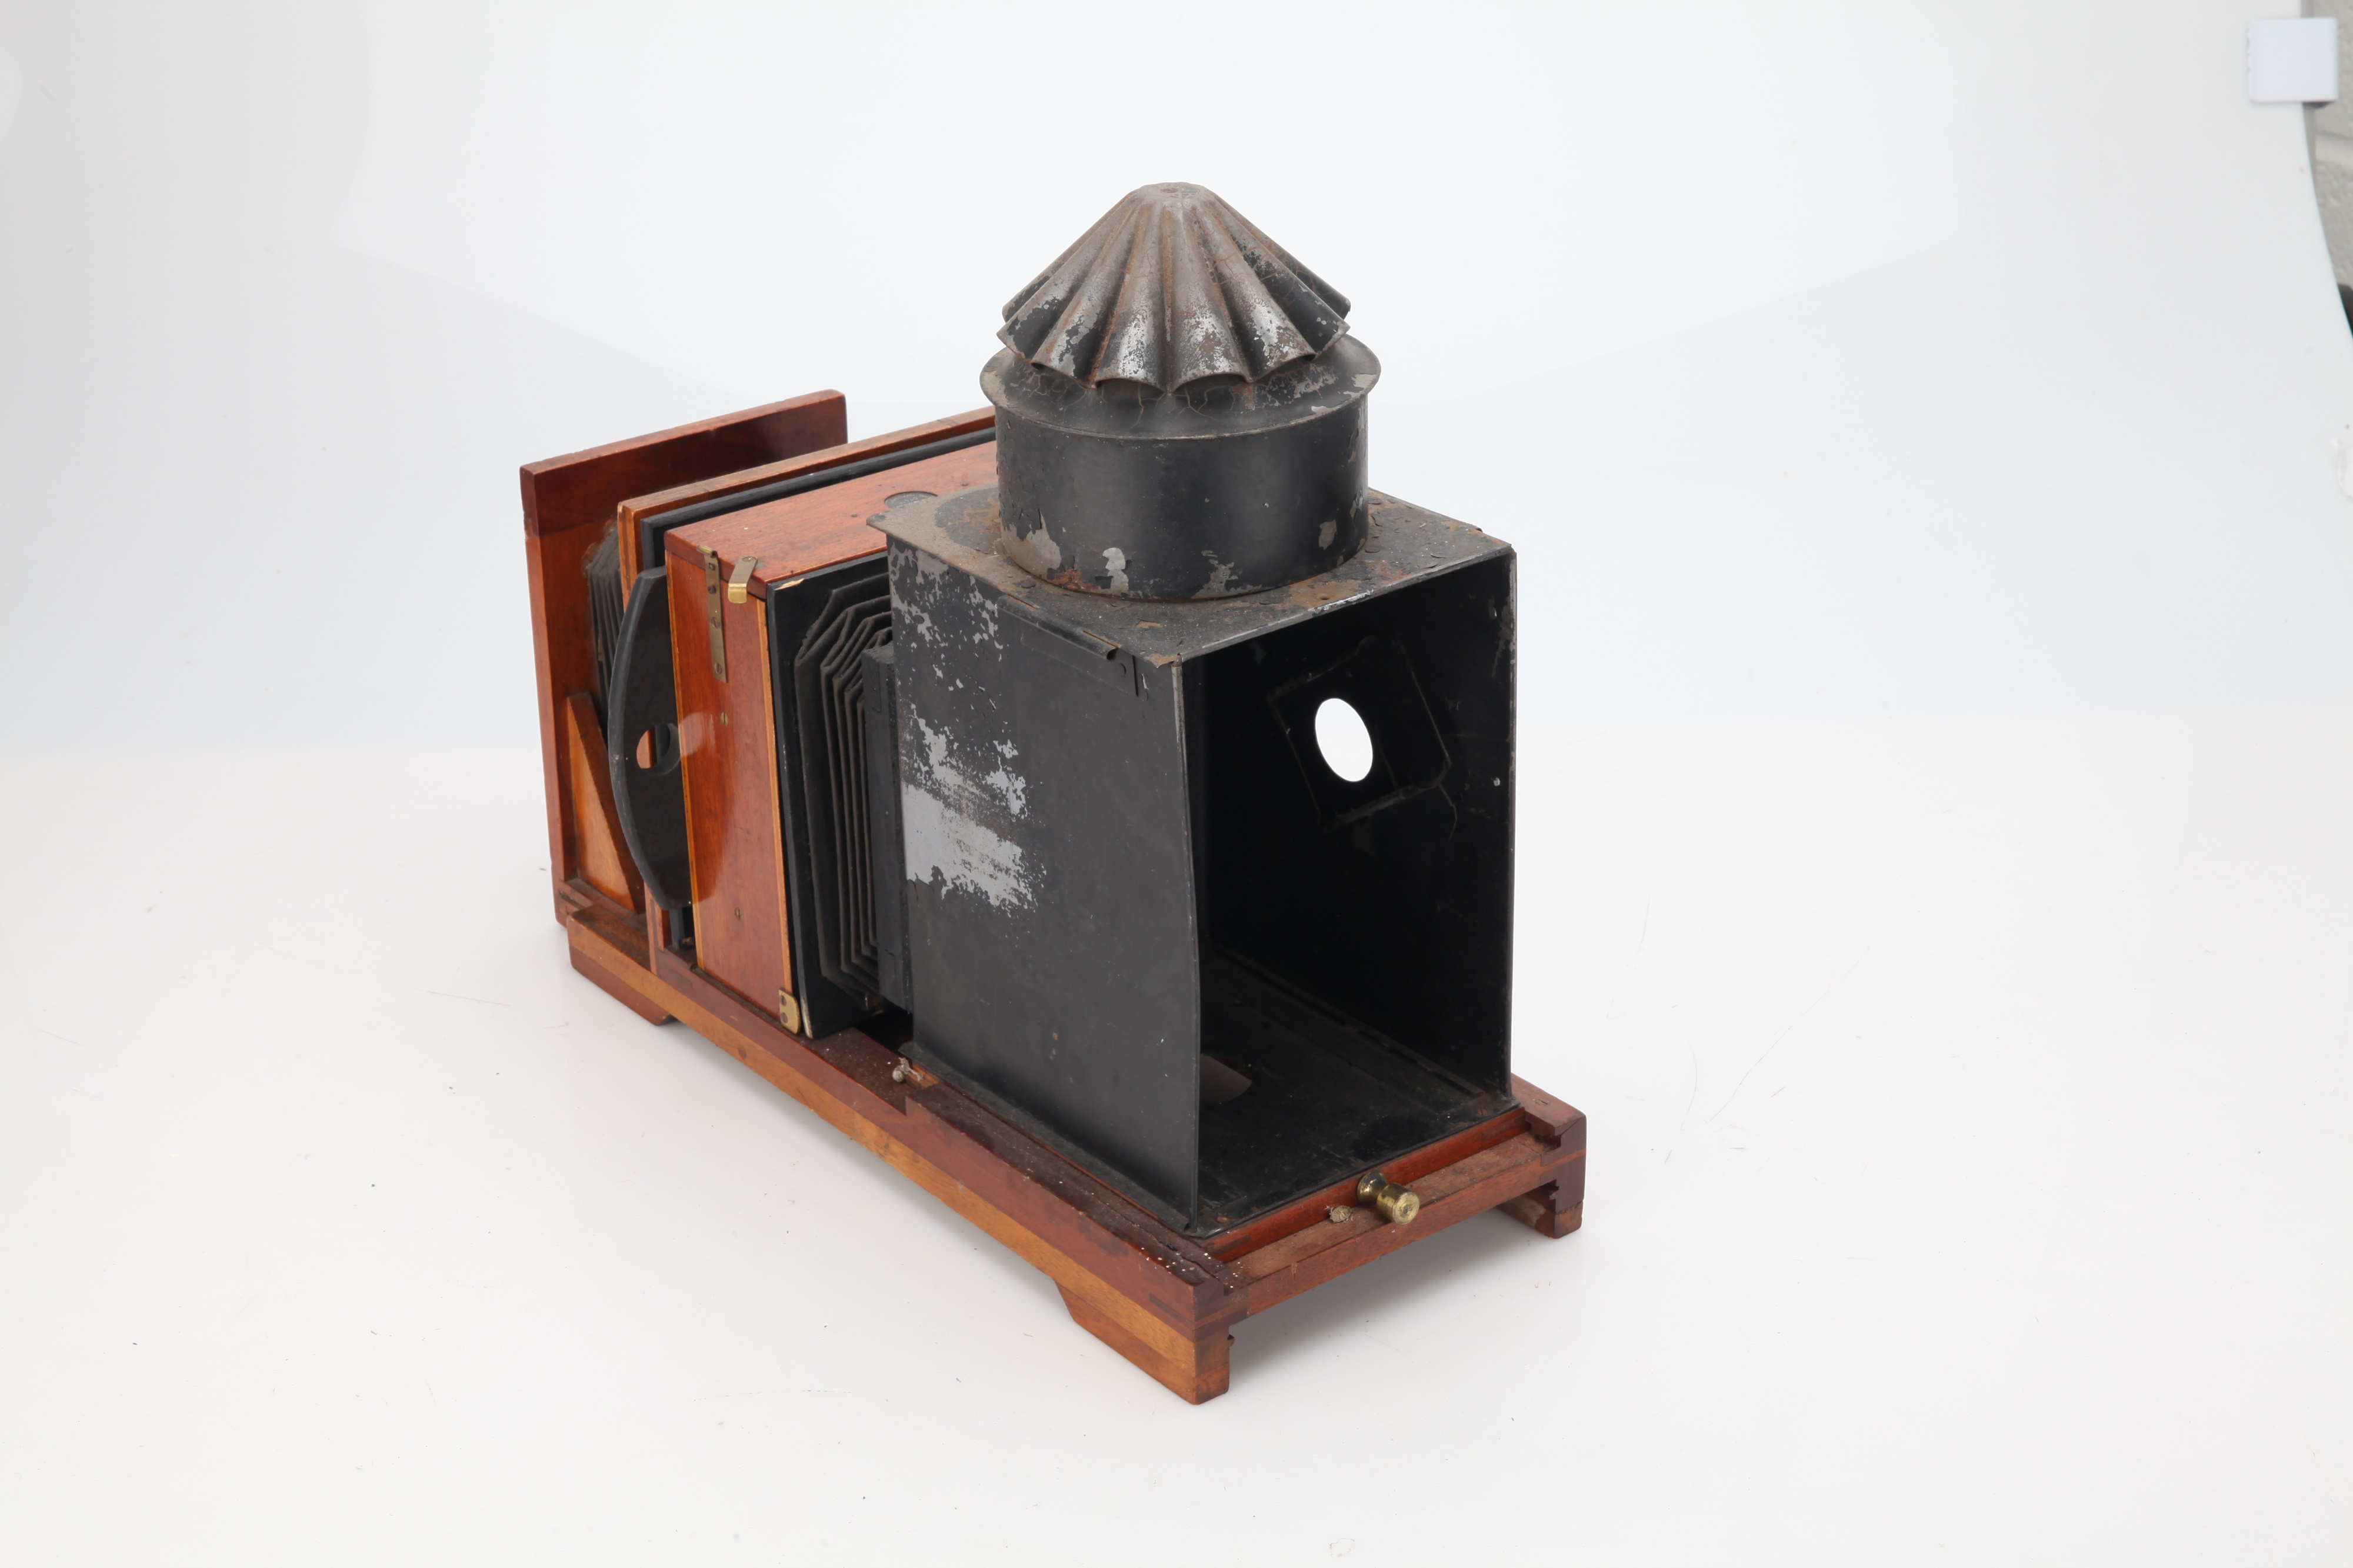 A Brass & Mahogany Quarter Plate Enlarger, - Image 2 of 3